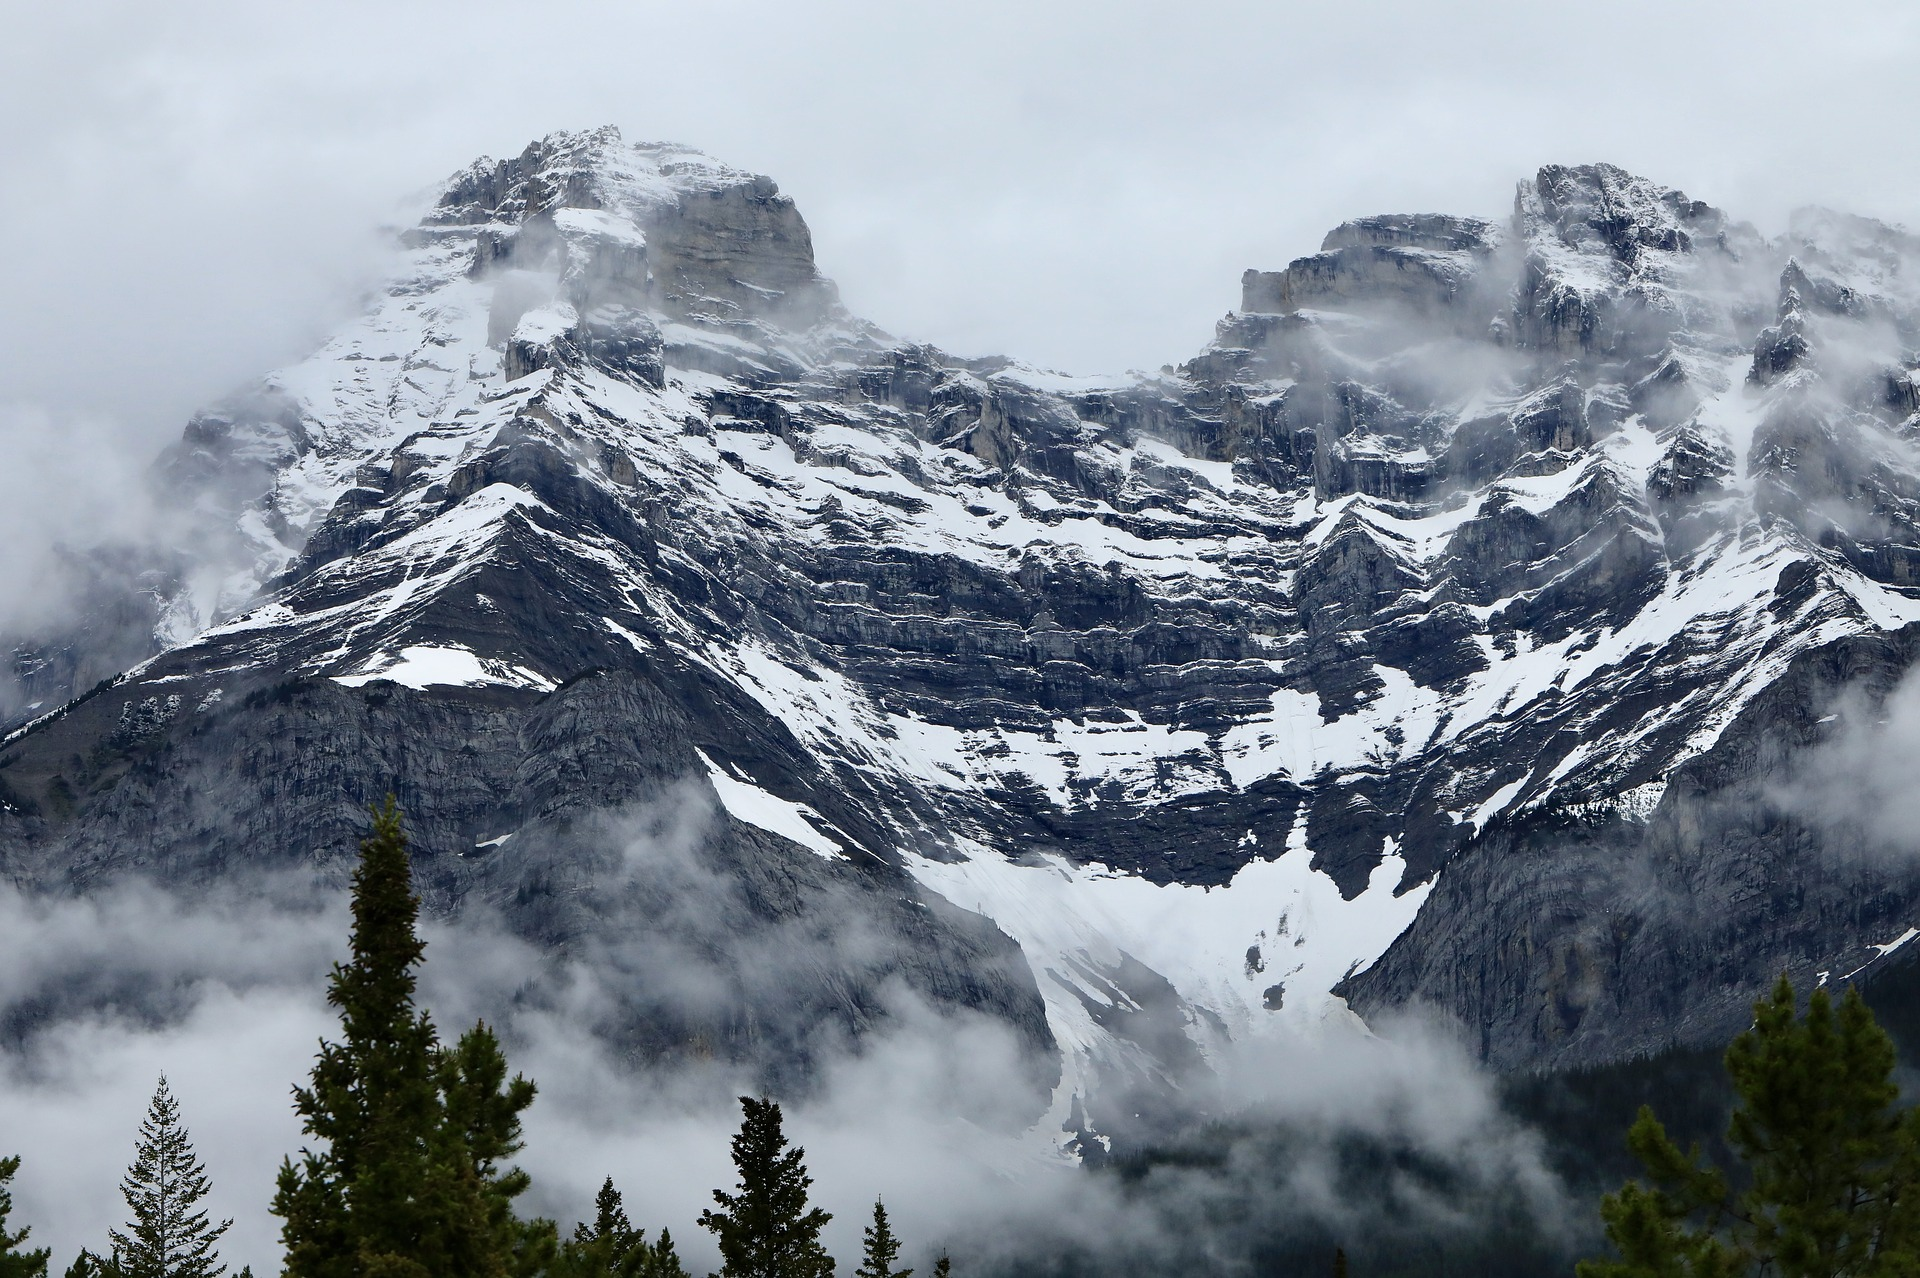 - Canadian Rockies